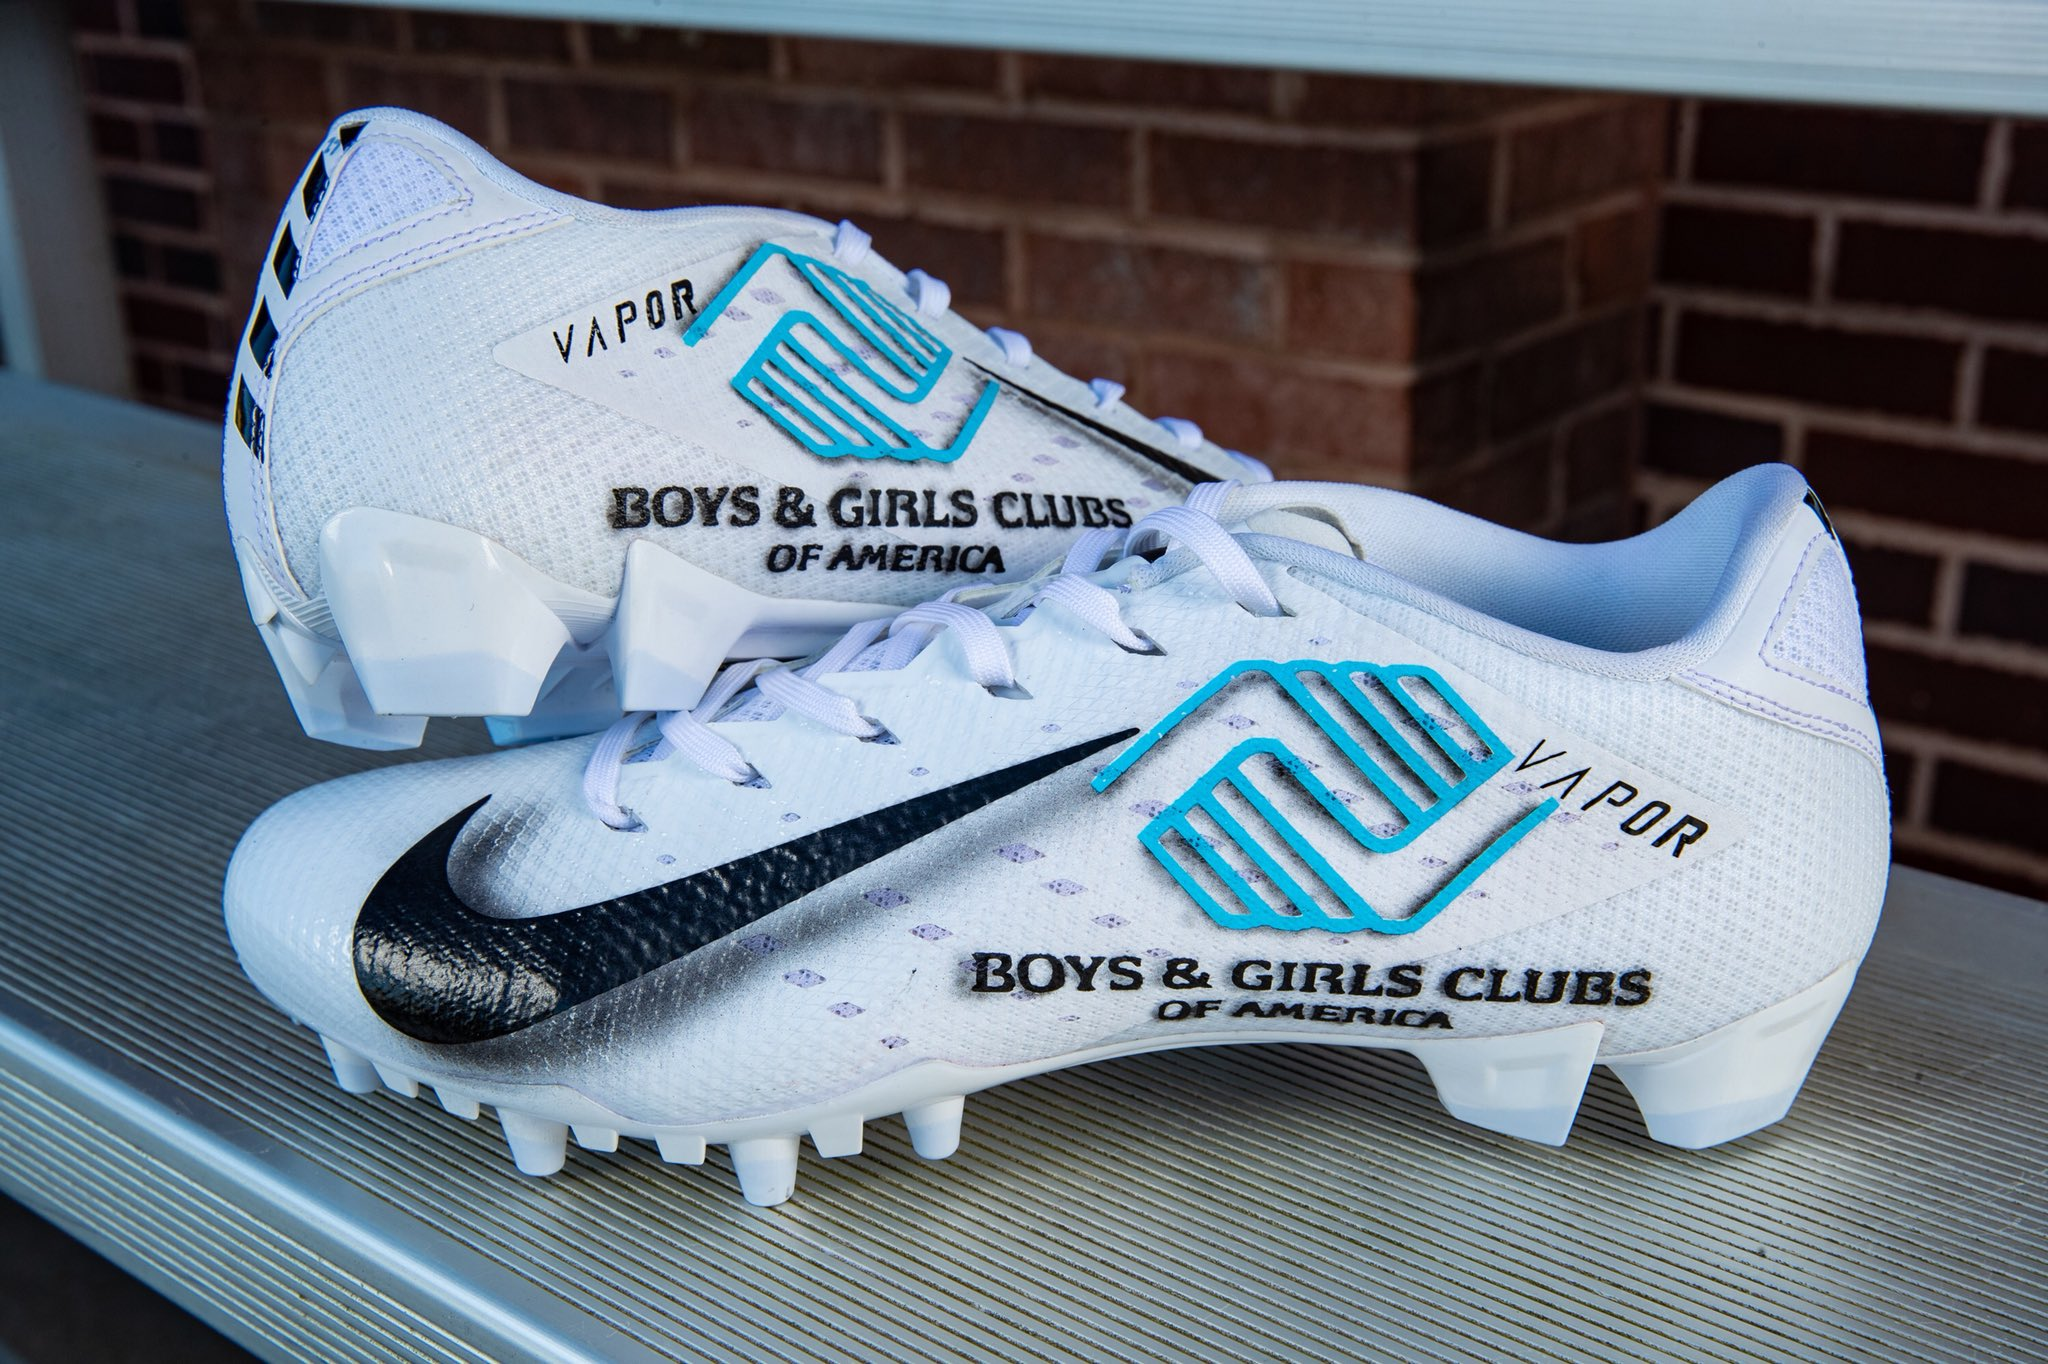 Atlanta Falcons On Twitter Atlanta Falcons Mycausemycleats Read The Stories Behind The Cleats Https T Co 2fl15fr9ds